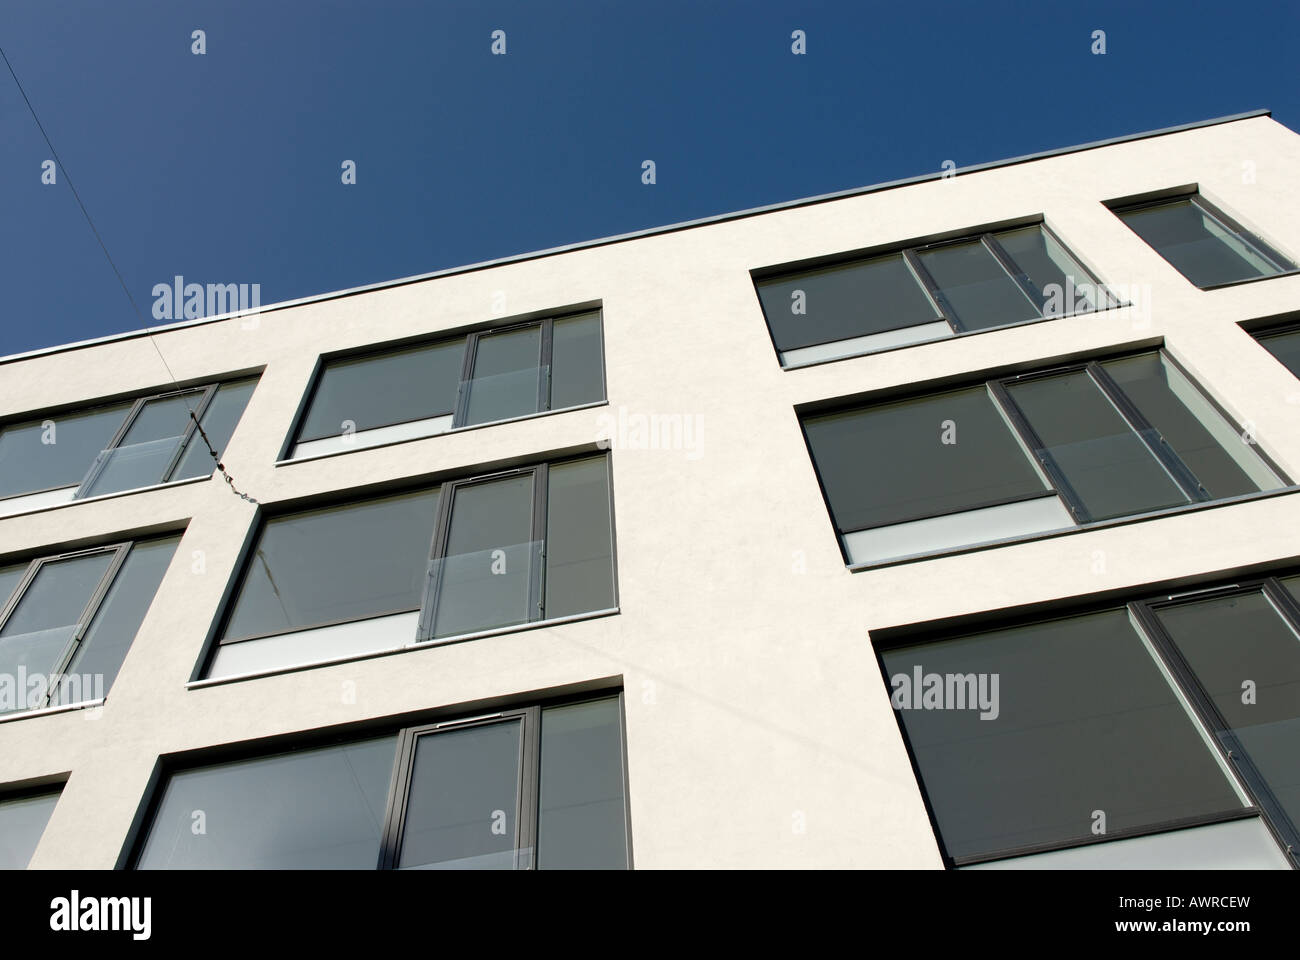 VACANT APARTMENTS - Stock Image